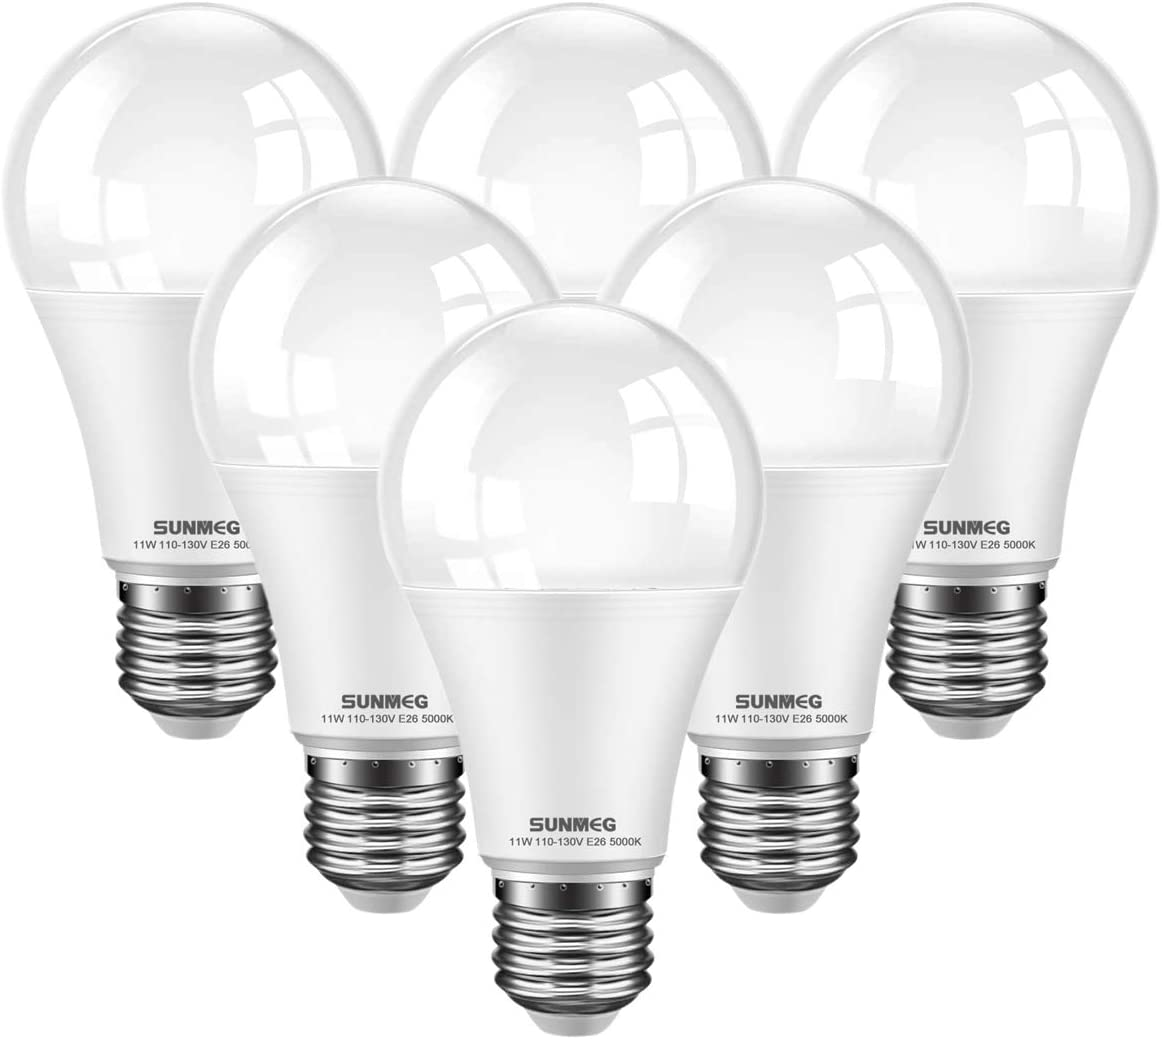 6 Pack Sunmeg A60 Led Light Bulb 100 Watt Equivalent 15w E26 Led Bulbs 1050 Lumens Daylight 5000k 120vac